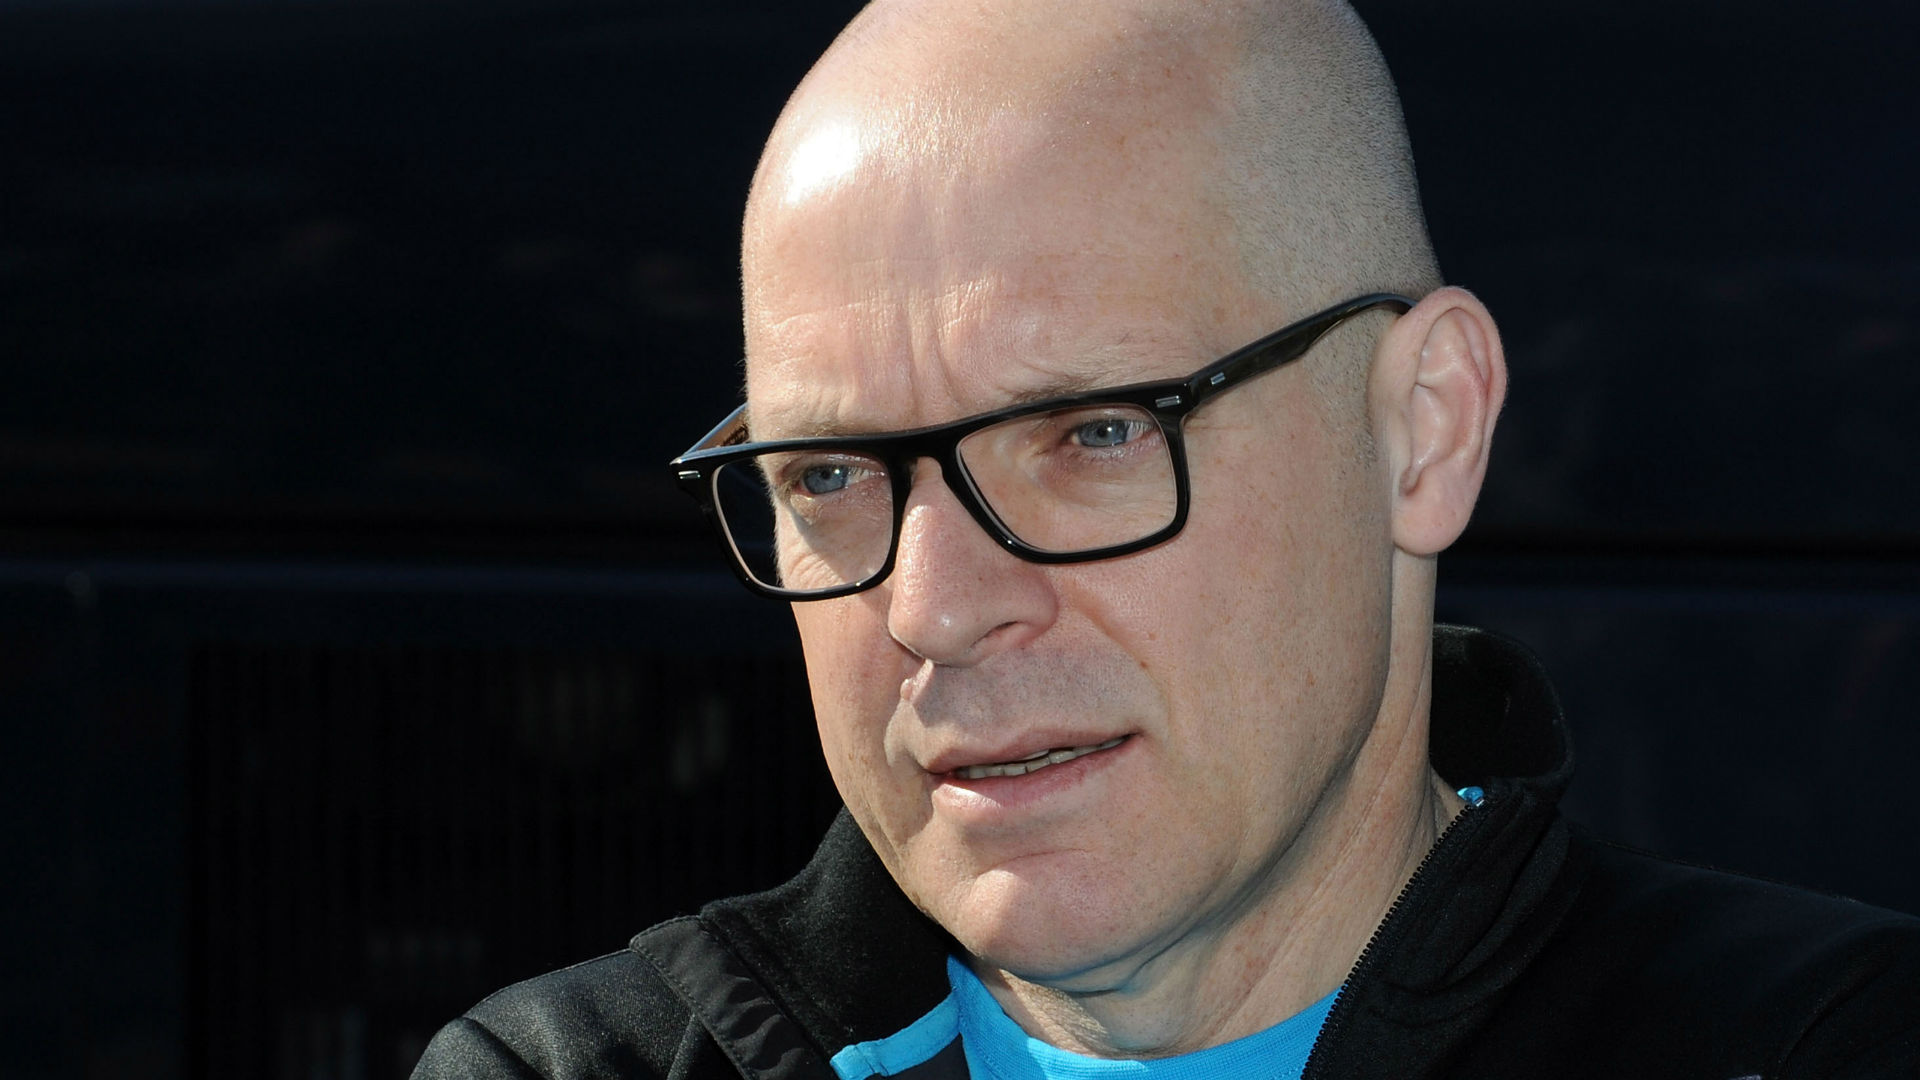 Brailsford sees risk in attempting to unseat Tour leader Alaphilippe